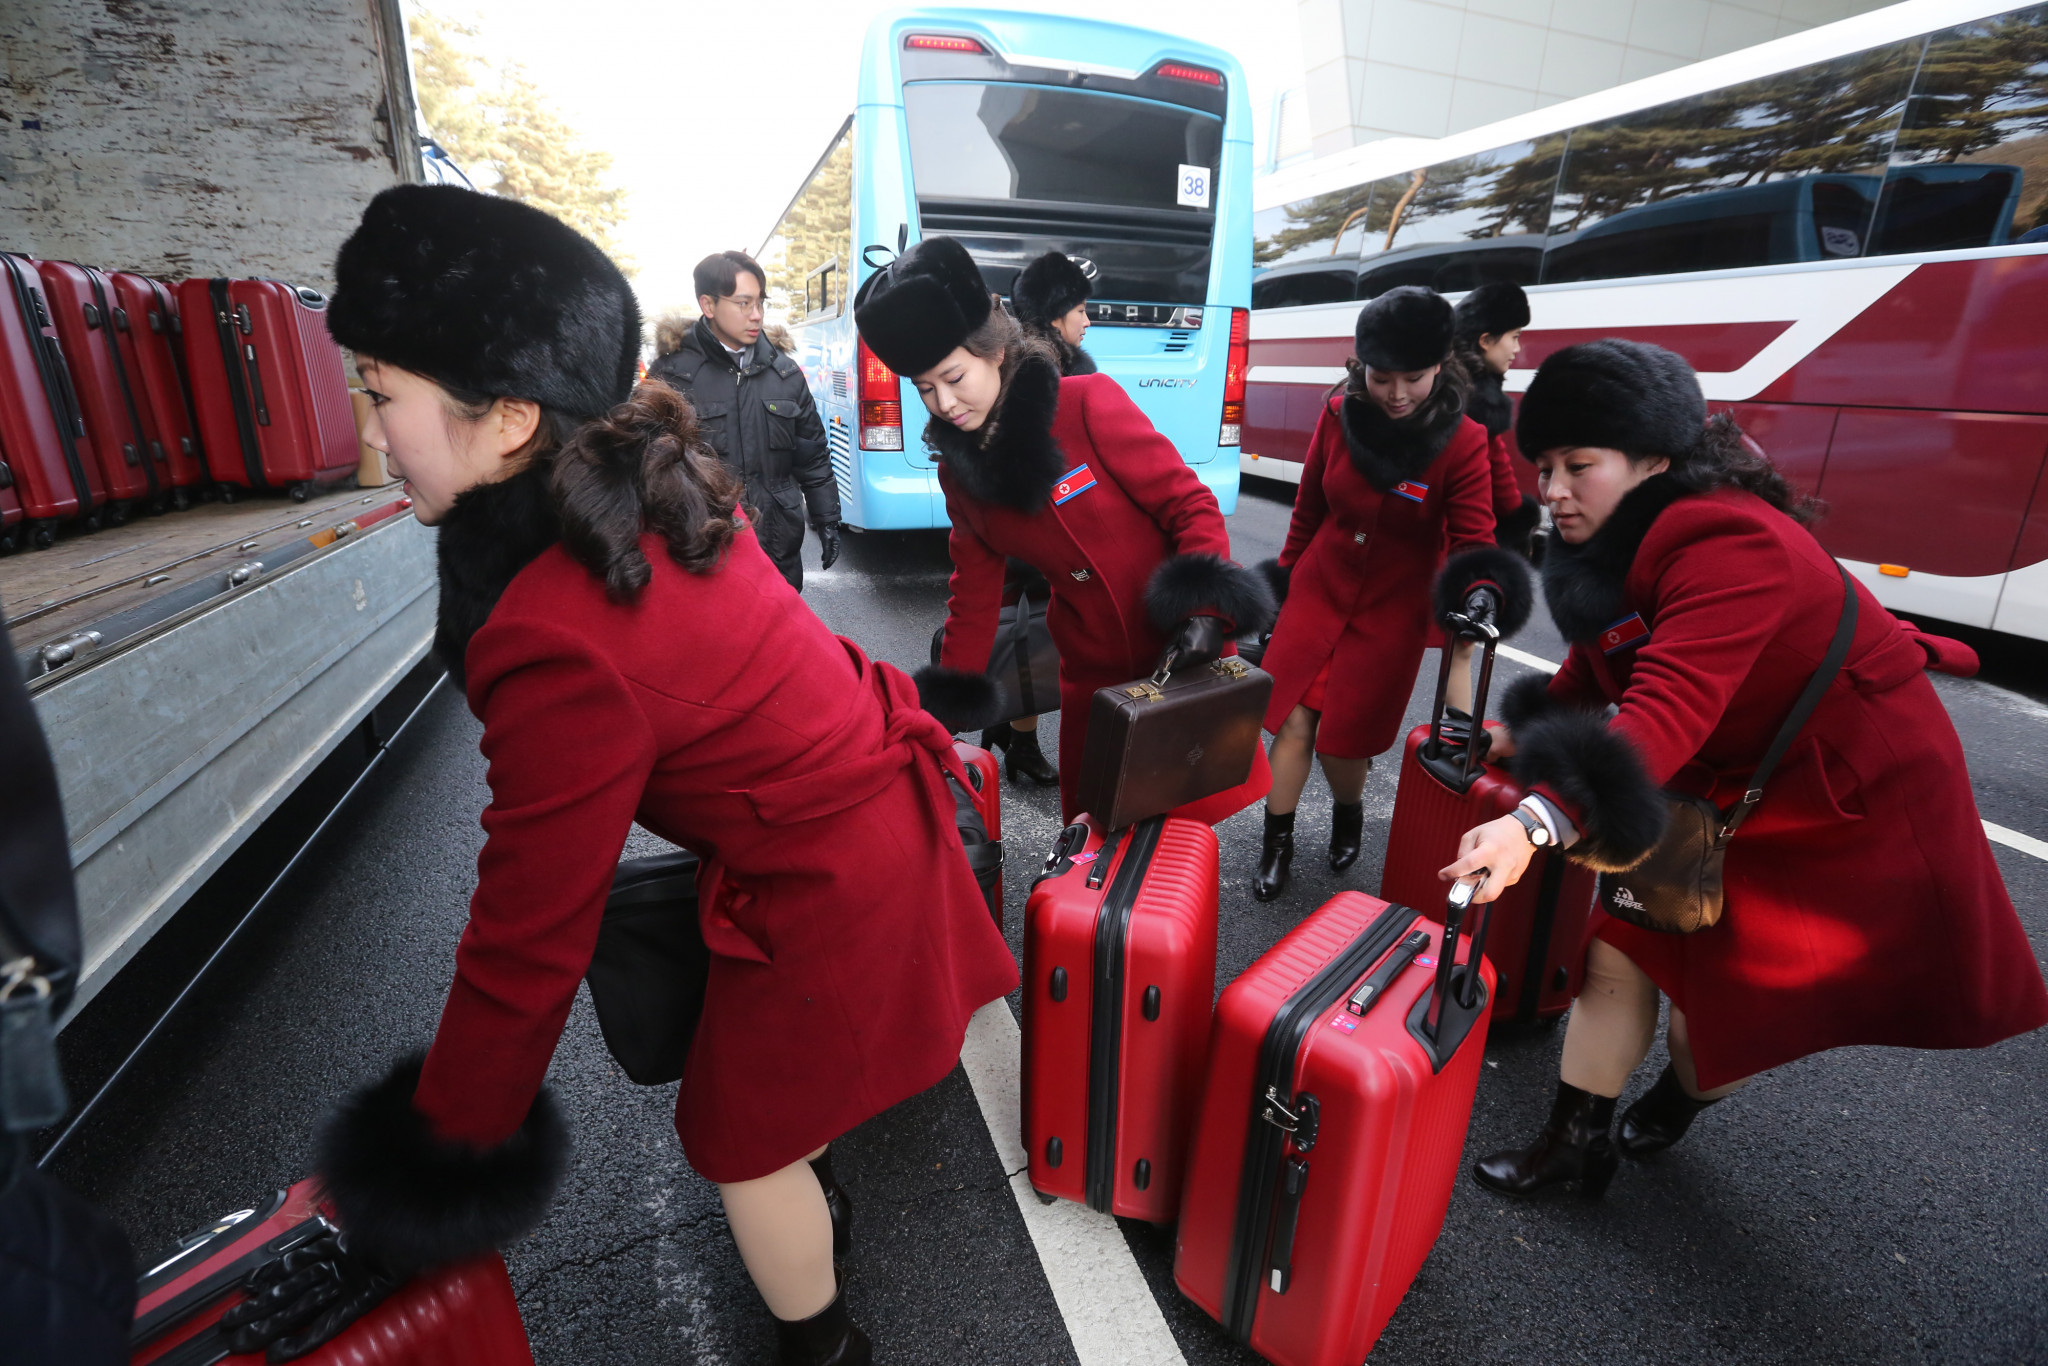 The cheerleaders who arrived over the border today were part of a delegation of 280 from North Korea to support their team during the Winter Olympics at Pyeongchang 2018